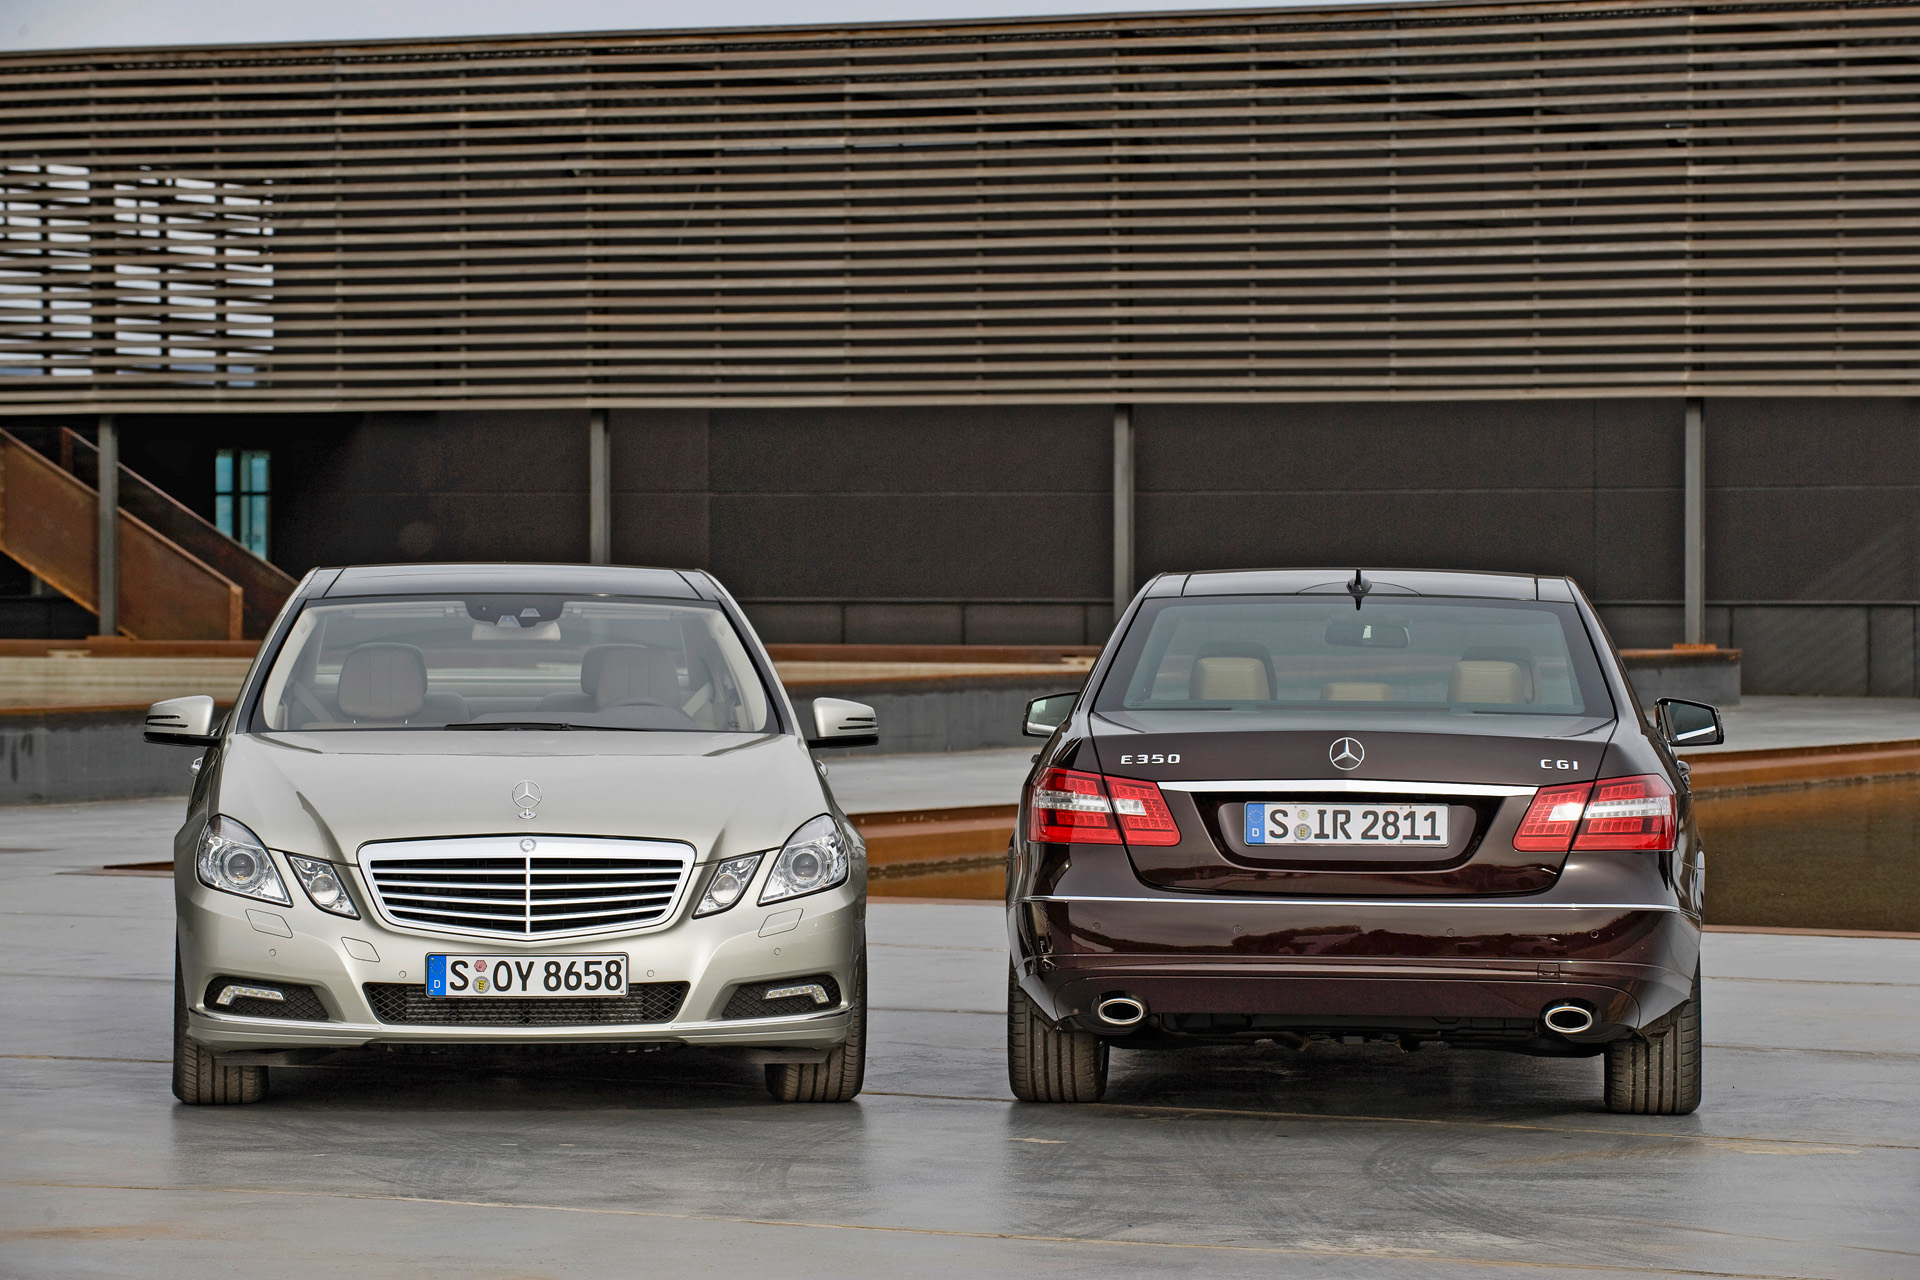 You can vote for this Mercedes-Benz E-Class W212 photo